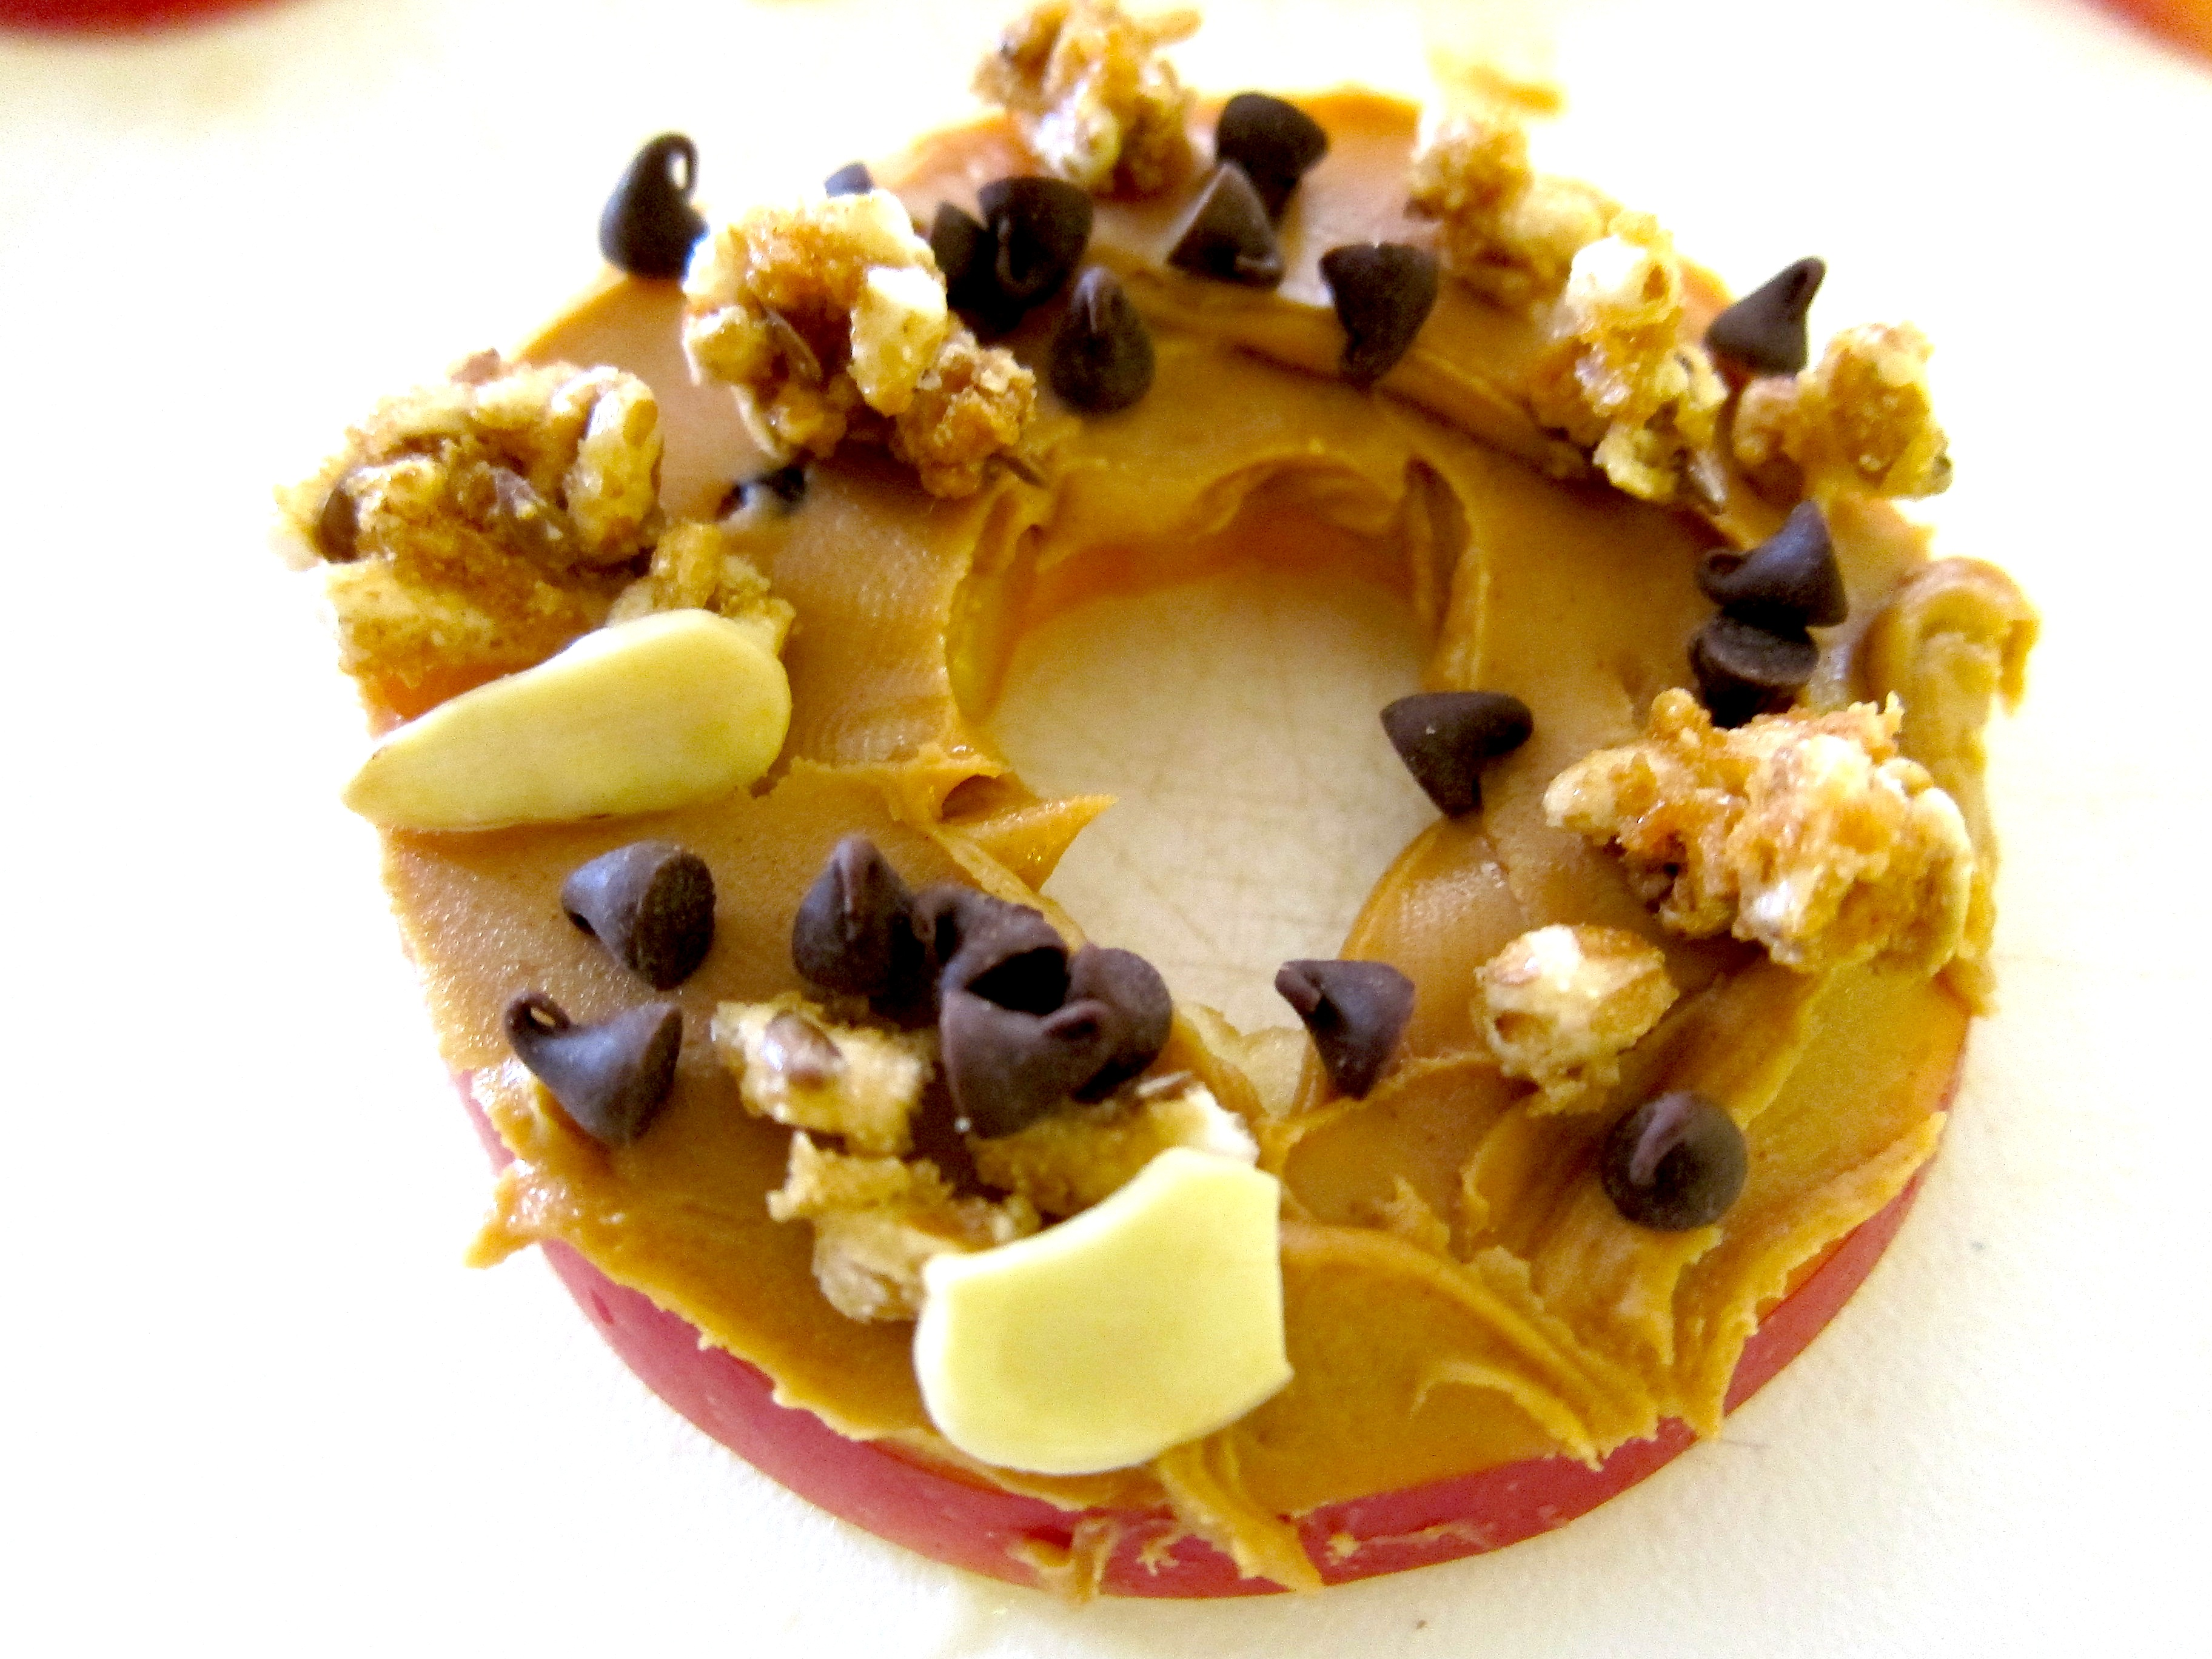 Top your sliced apple with granola, chocolate chips, peanut butter ...